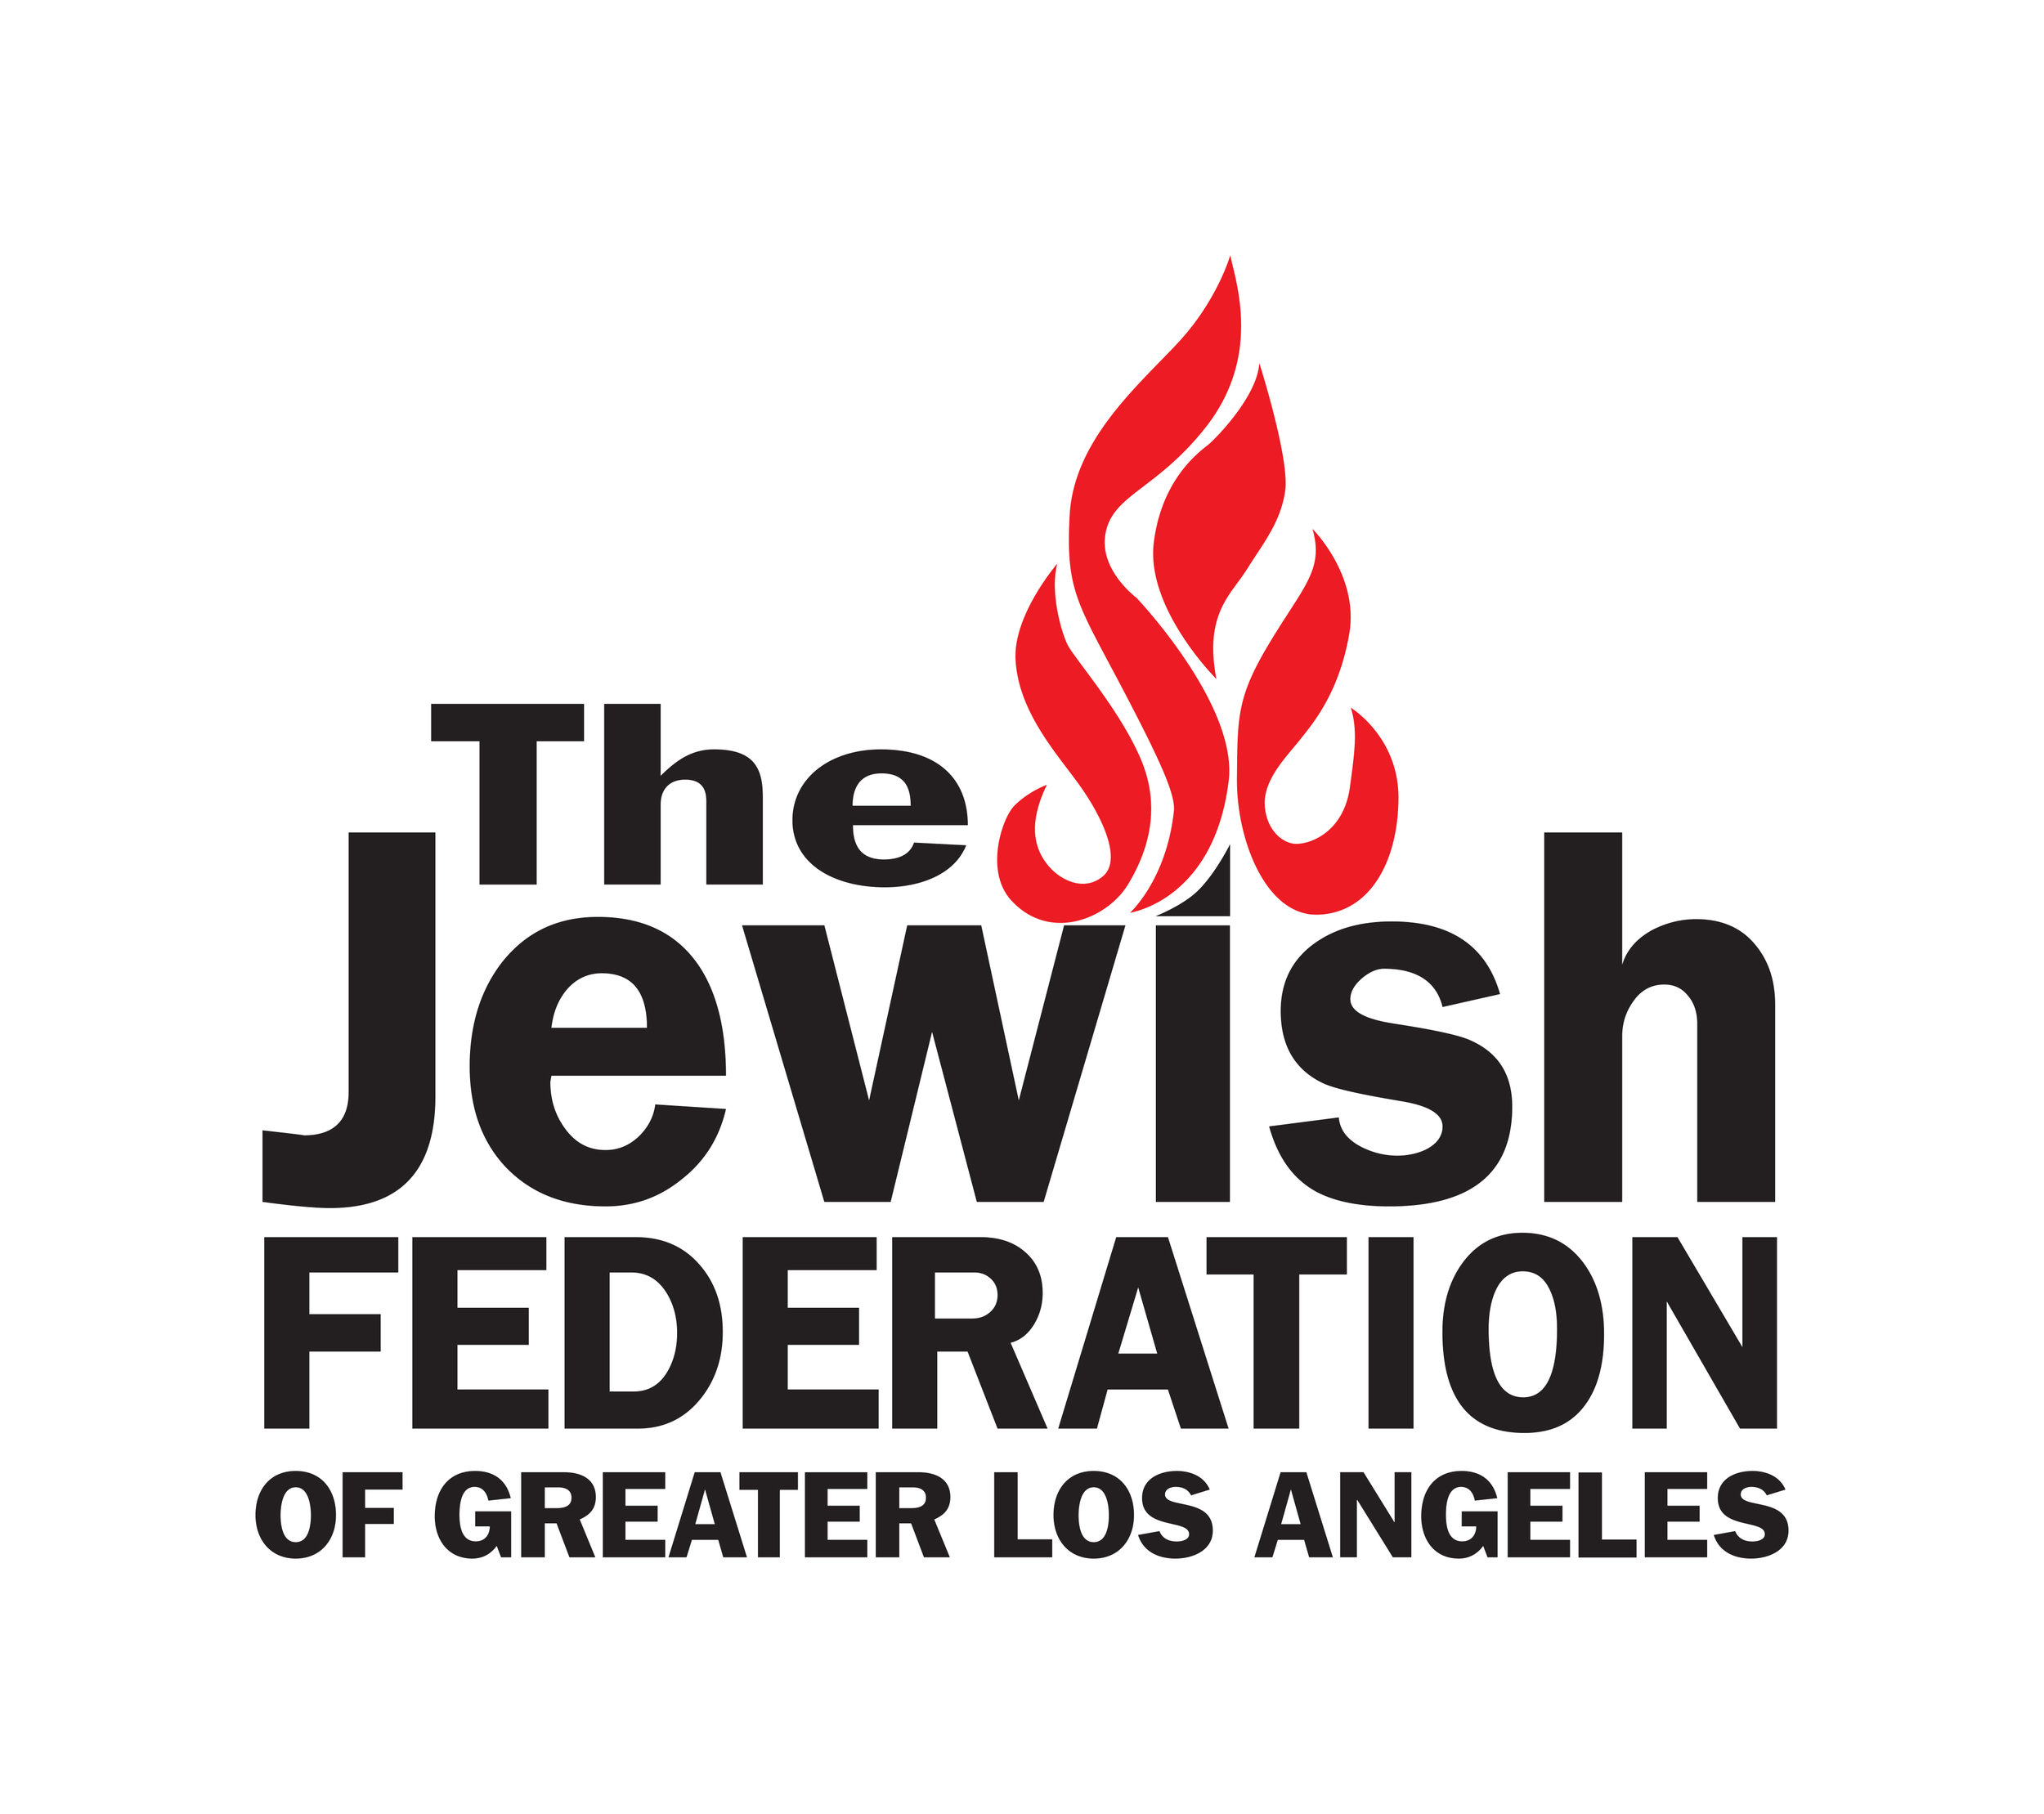 jewish_federation_of_greater_los_angeles_12-1.jpg